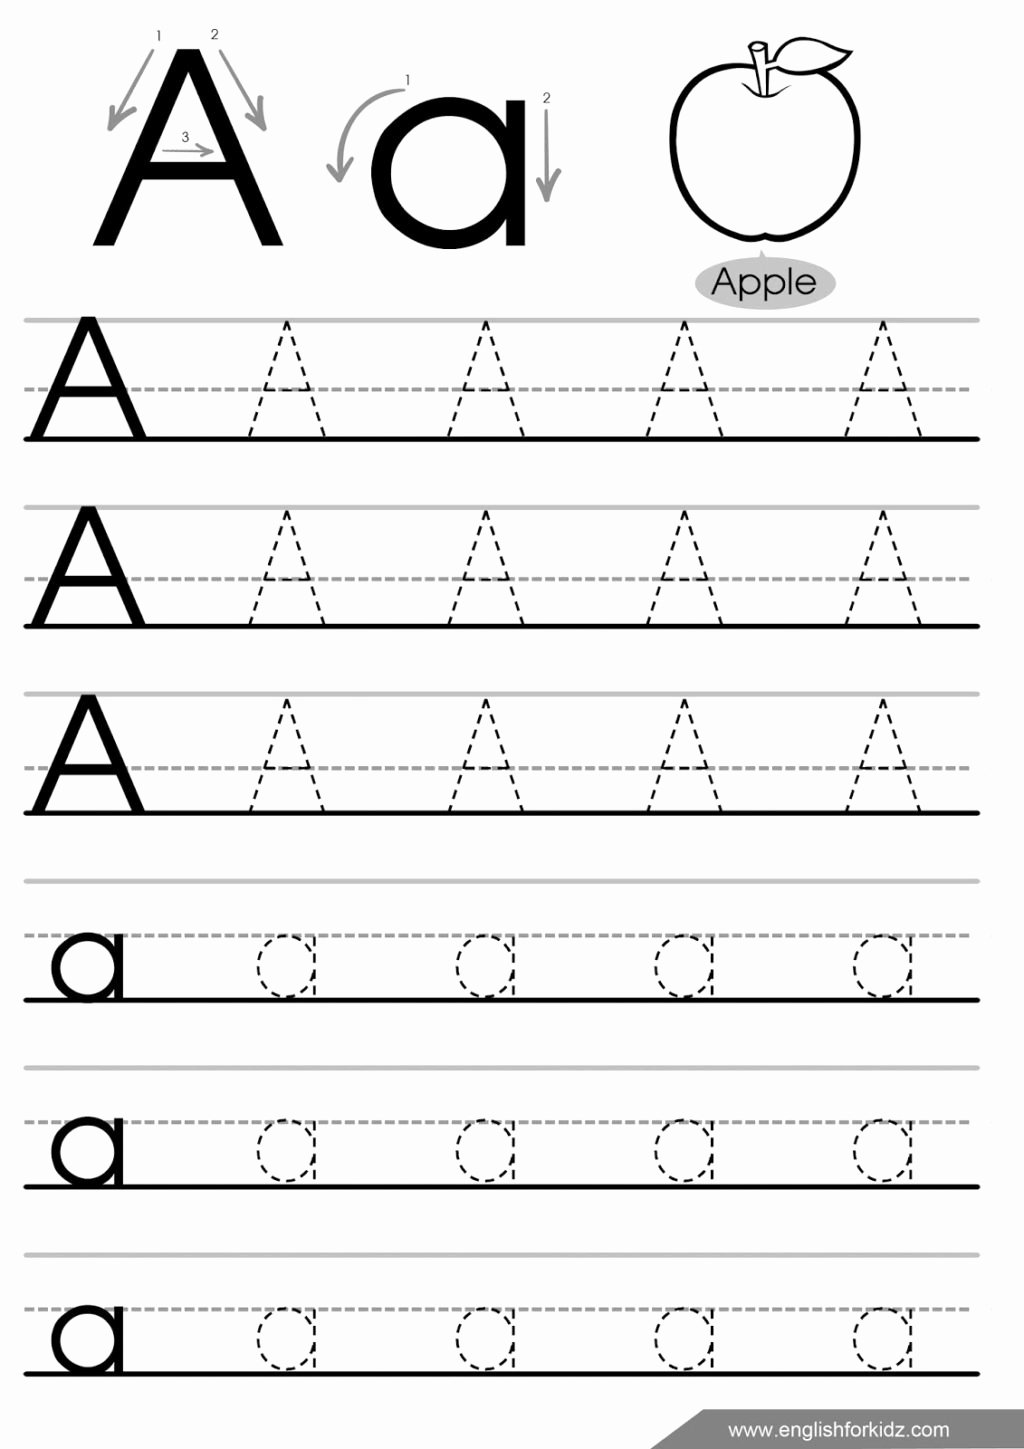 Free Printable Letter Tracing Worksheets for Preschoolers New Worksheet Incredible Tracing Sheets Image Ideas Letter